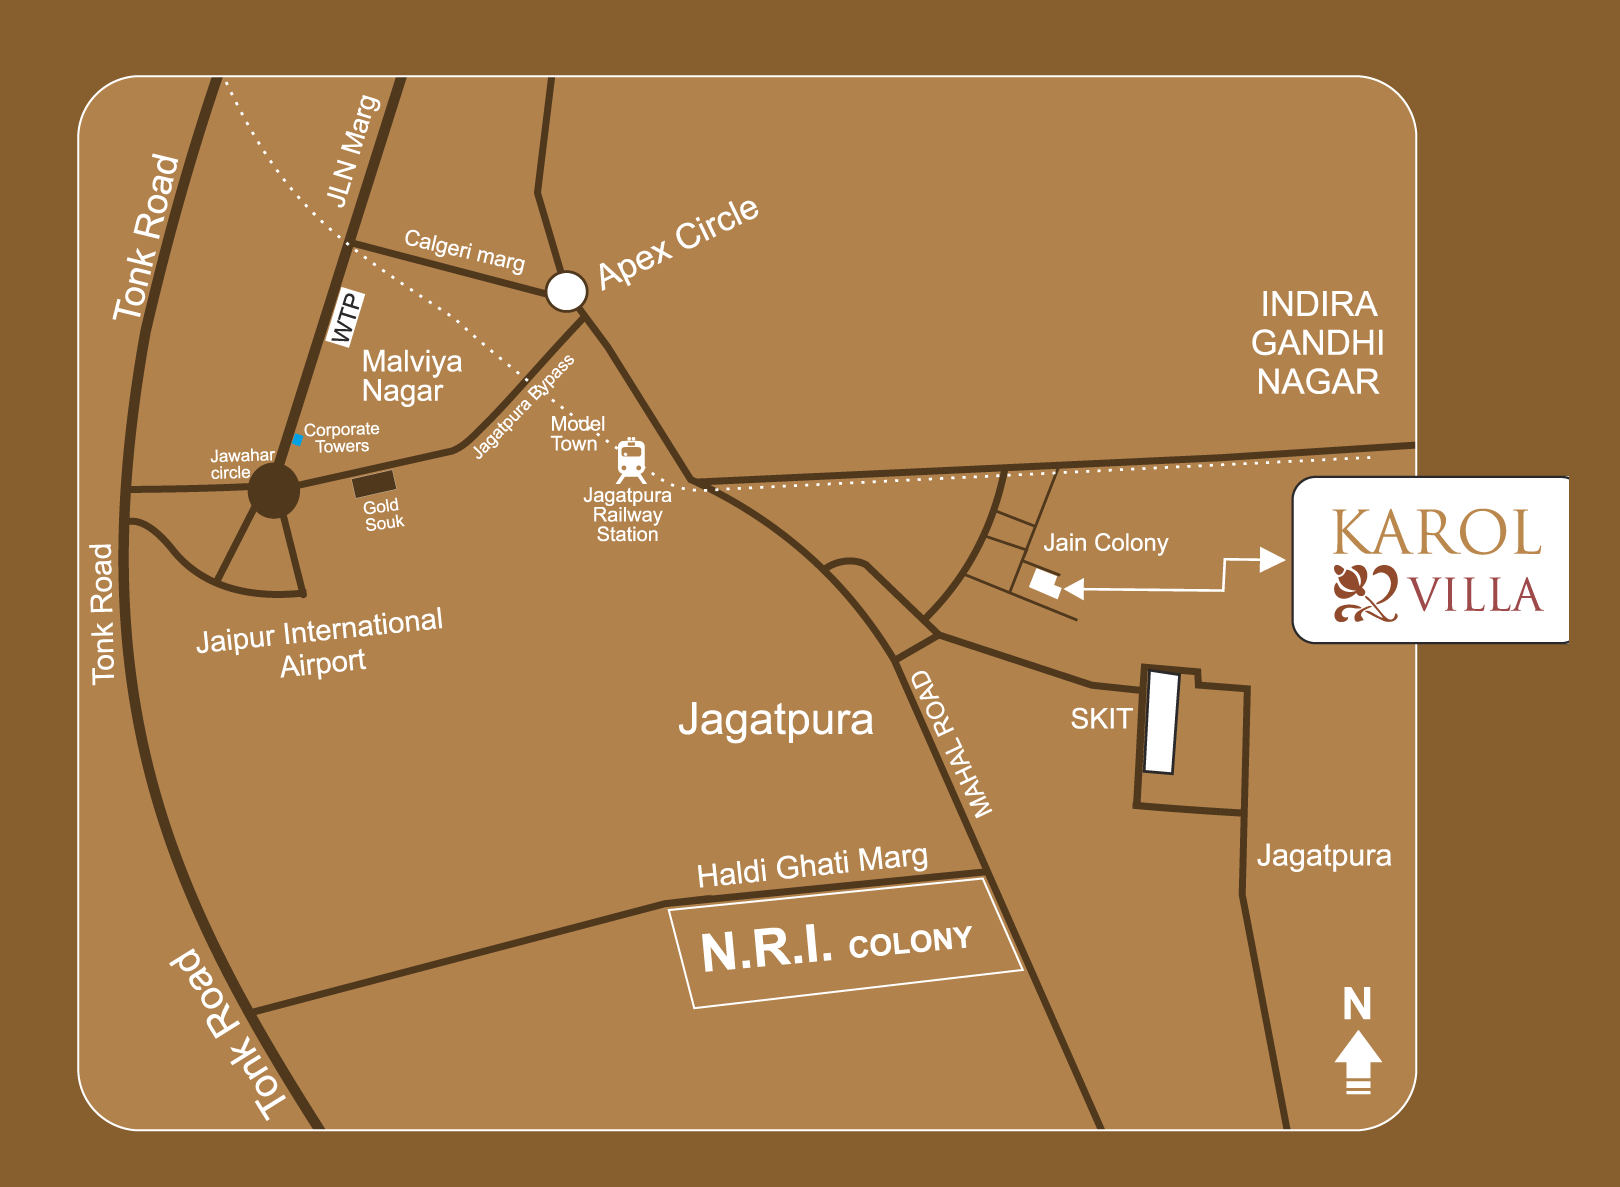 UDB Karol villa - Location Map